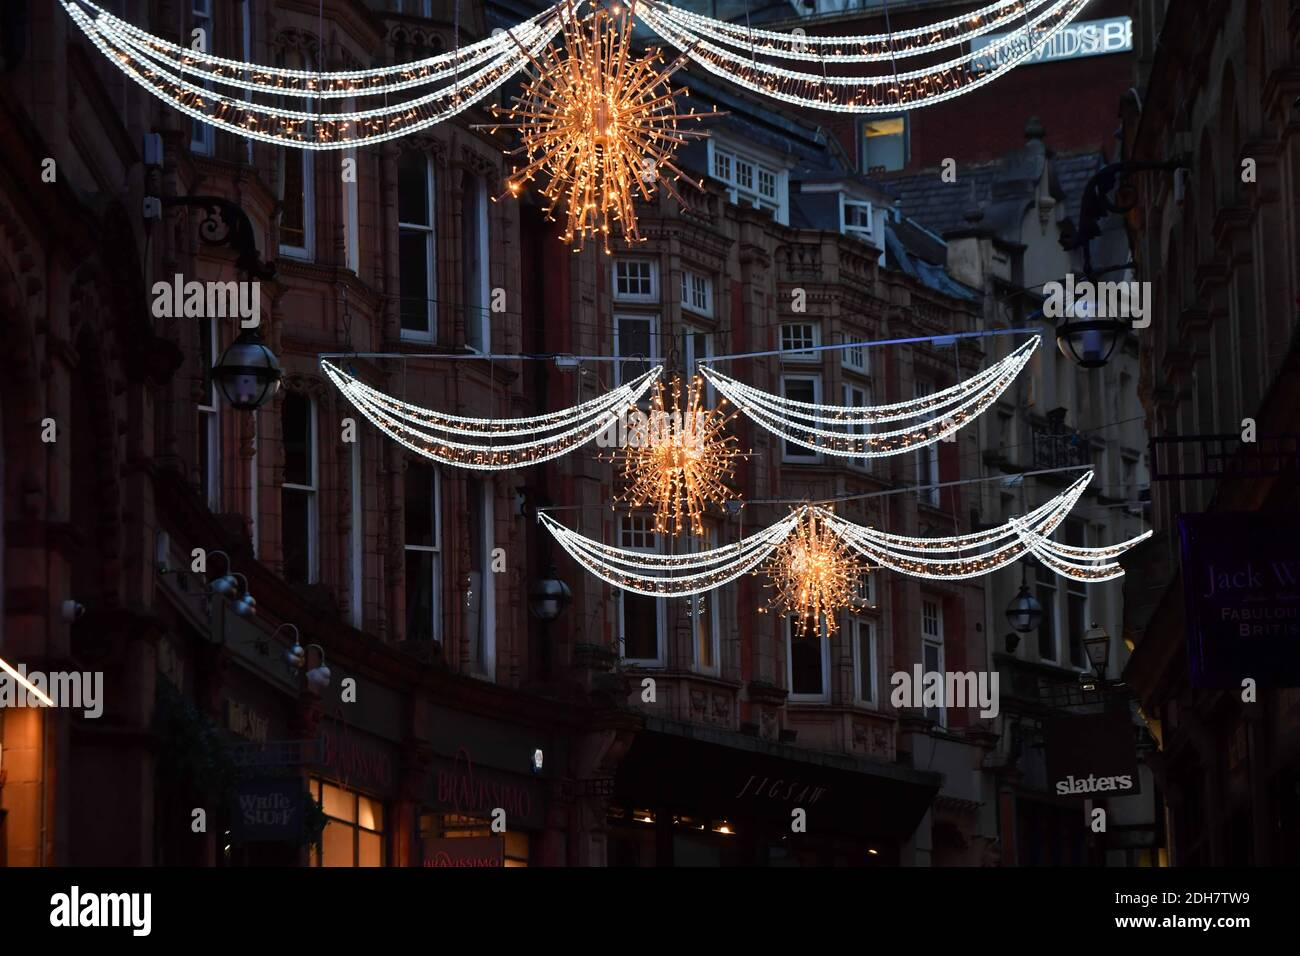 Pictured Birmingham Christmas lights are turned on for the up coming festive season in New Street and Victoria Square, Thursday 12th November 2020. Stock Photo